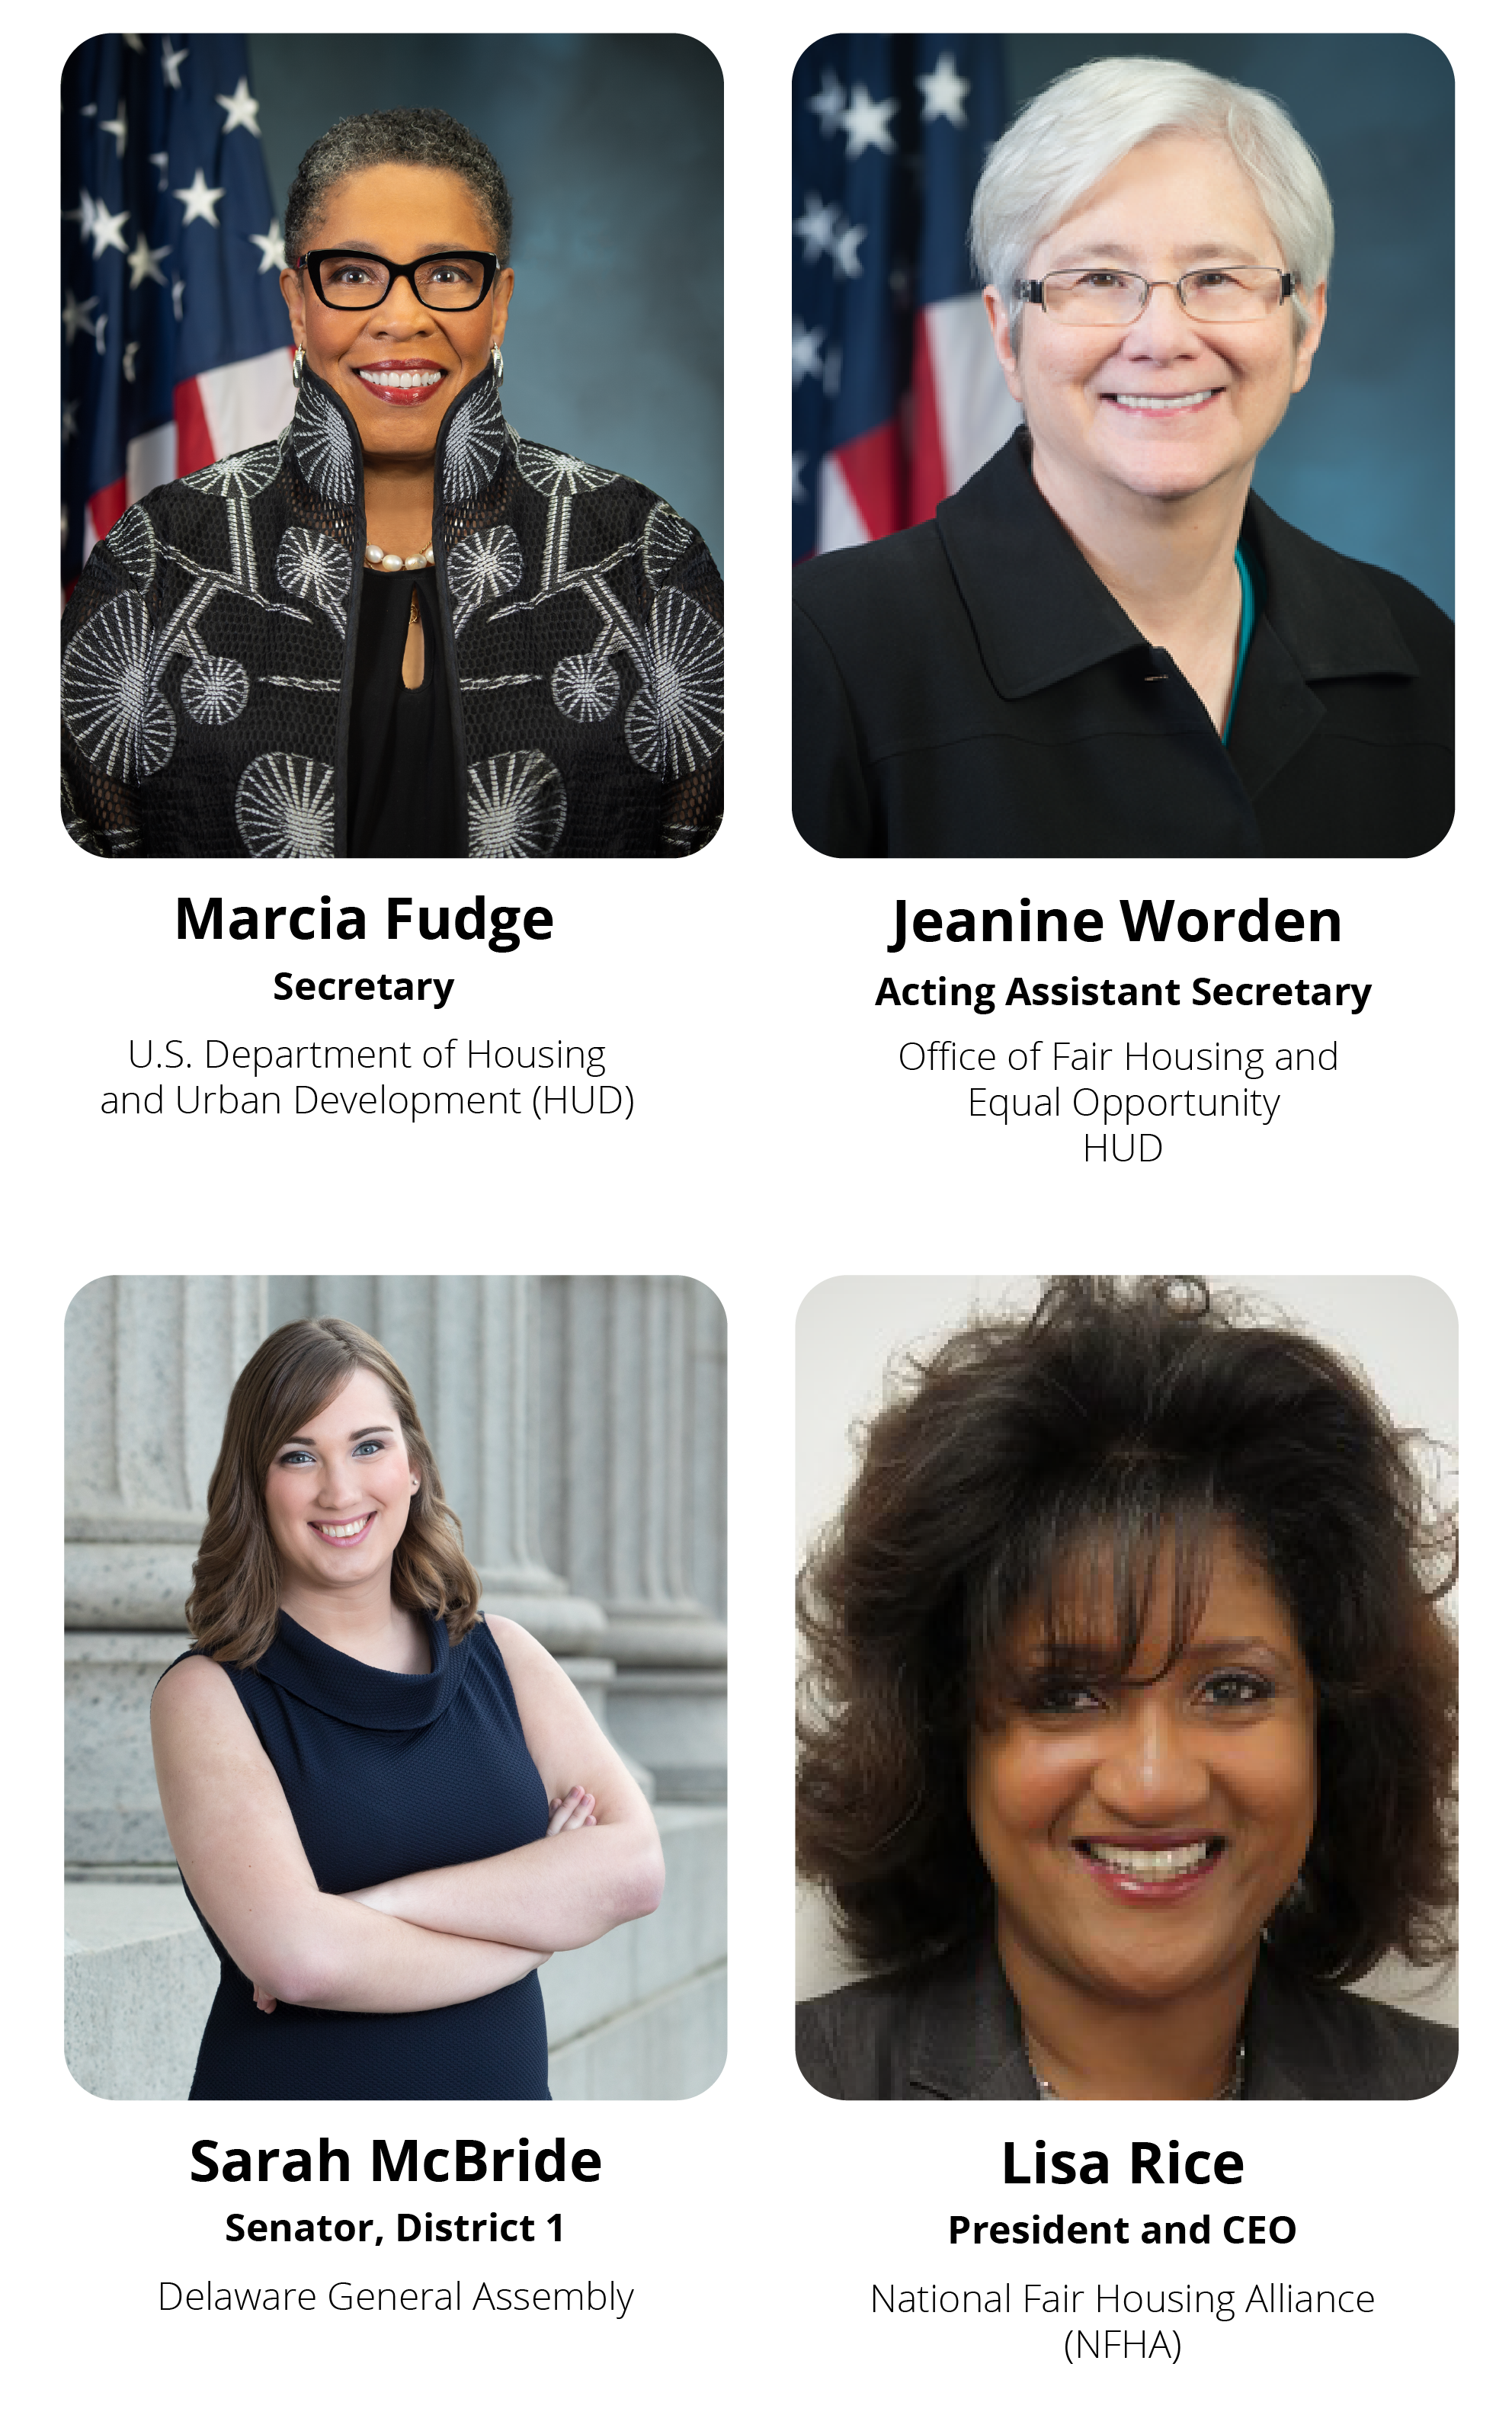 Highlighted Speakers: Marcia Fudge, Secretary, HUD; Jeanine Worden, Acting Assistant Secretary, FHEO, HUD; Sarah McBride, Senator, District 1, Delaware General Assembly; Lisa Rice, President and CEO, National Fair Housing Alliance (NFHA)